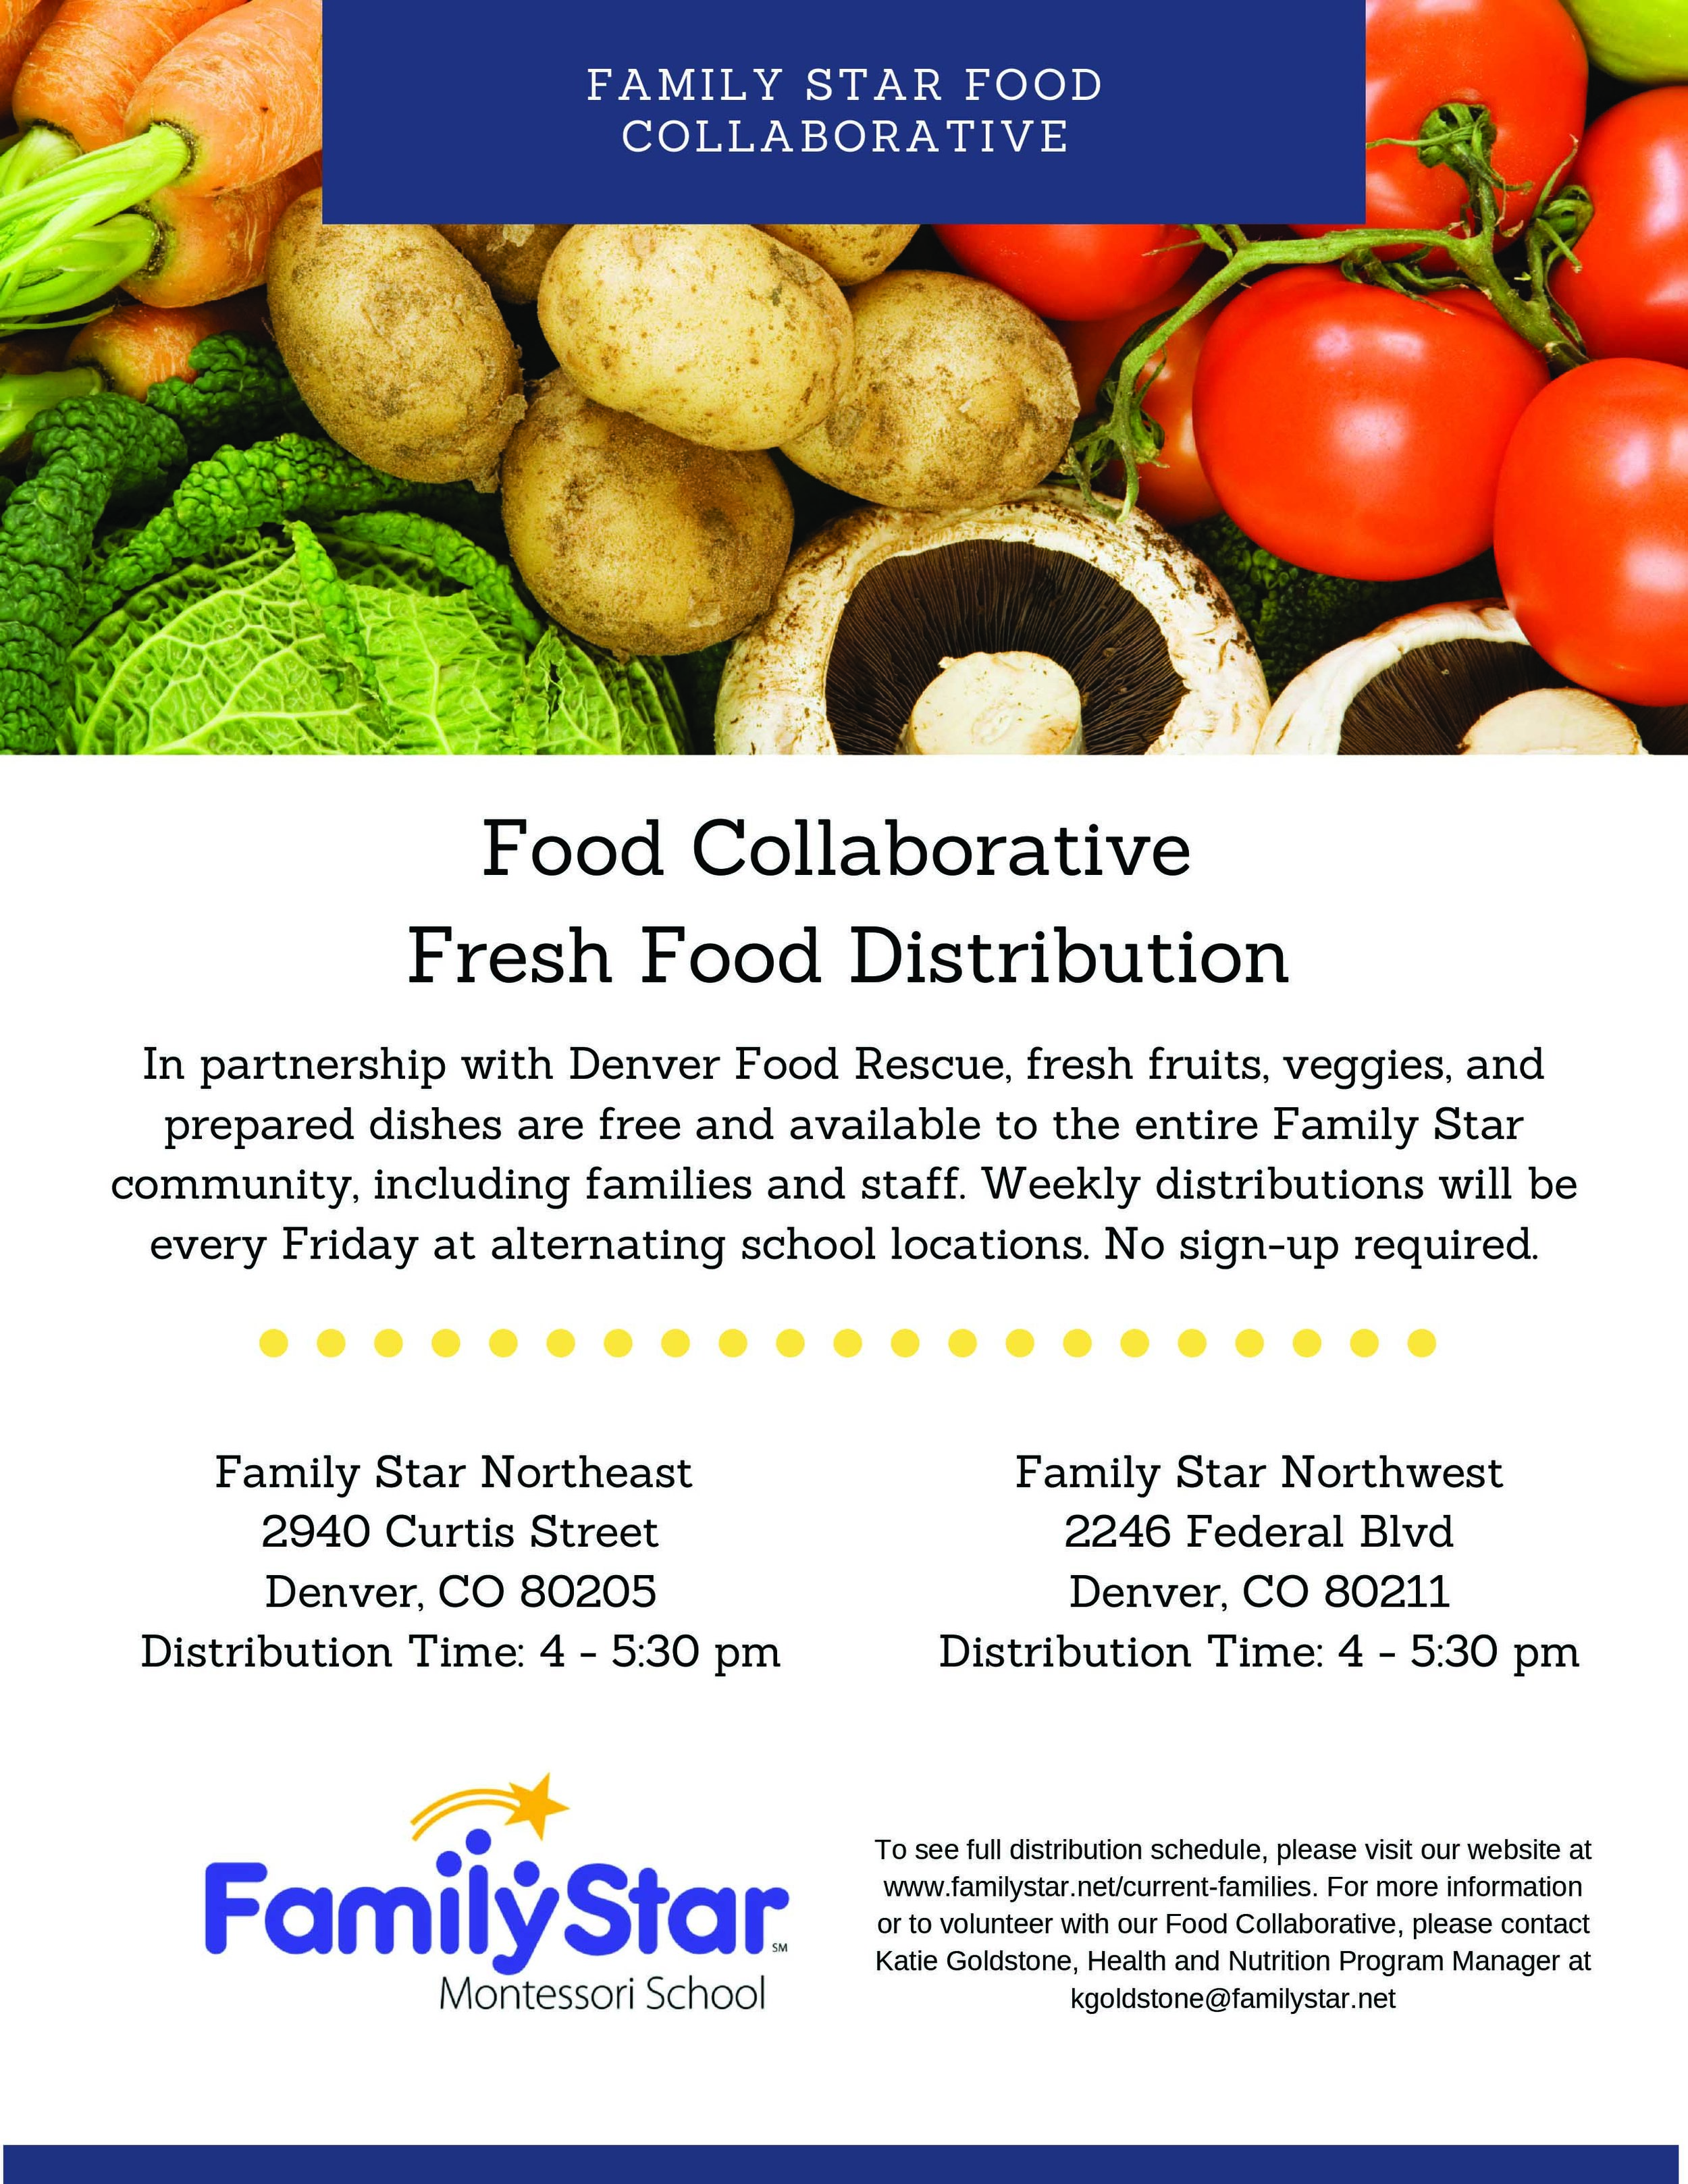 Food Collaborative General Flyer 2019.jpg